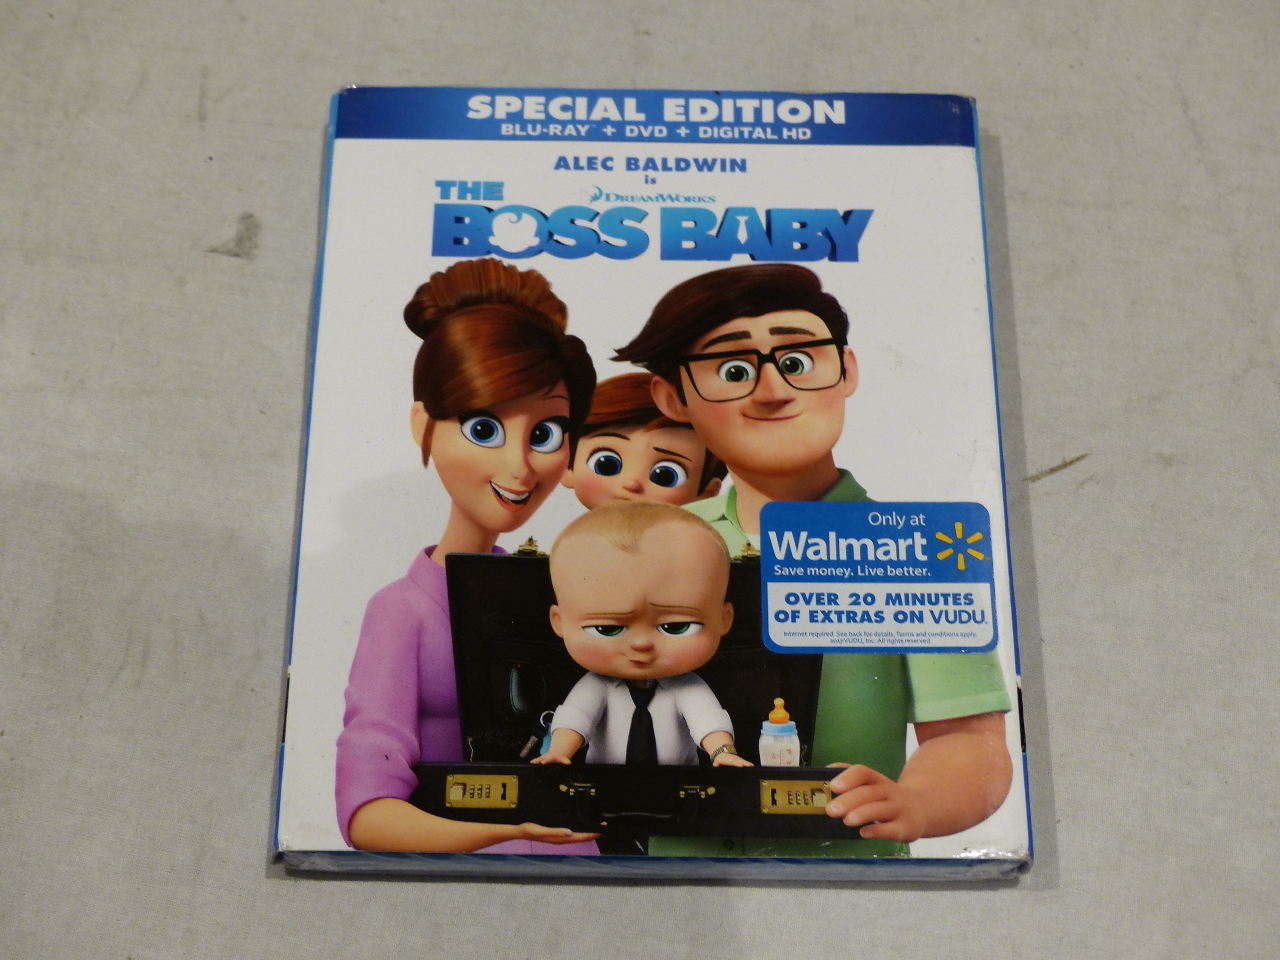 The Boss Baby Special Edition Blu Ray Dvd Digital Hd New Sealed W Slipcover Mdg Sales Llc